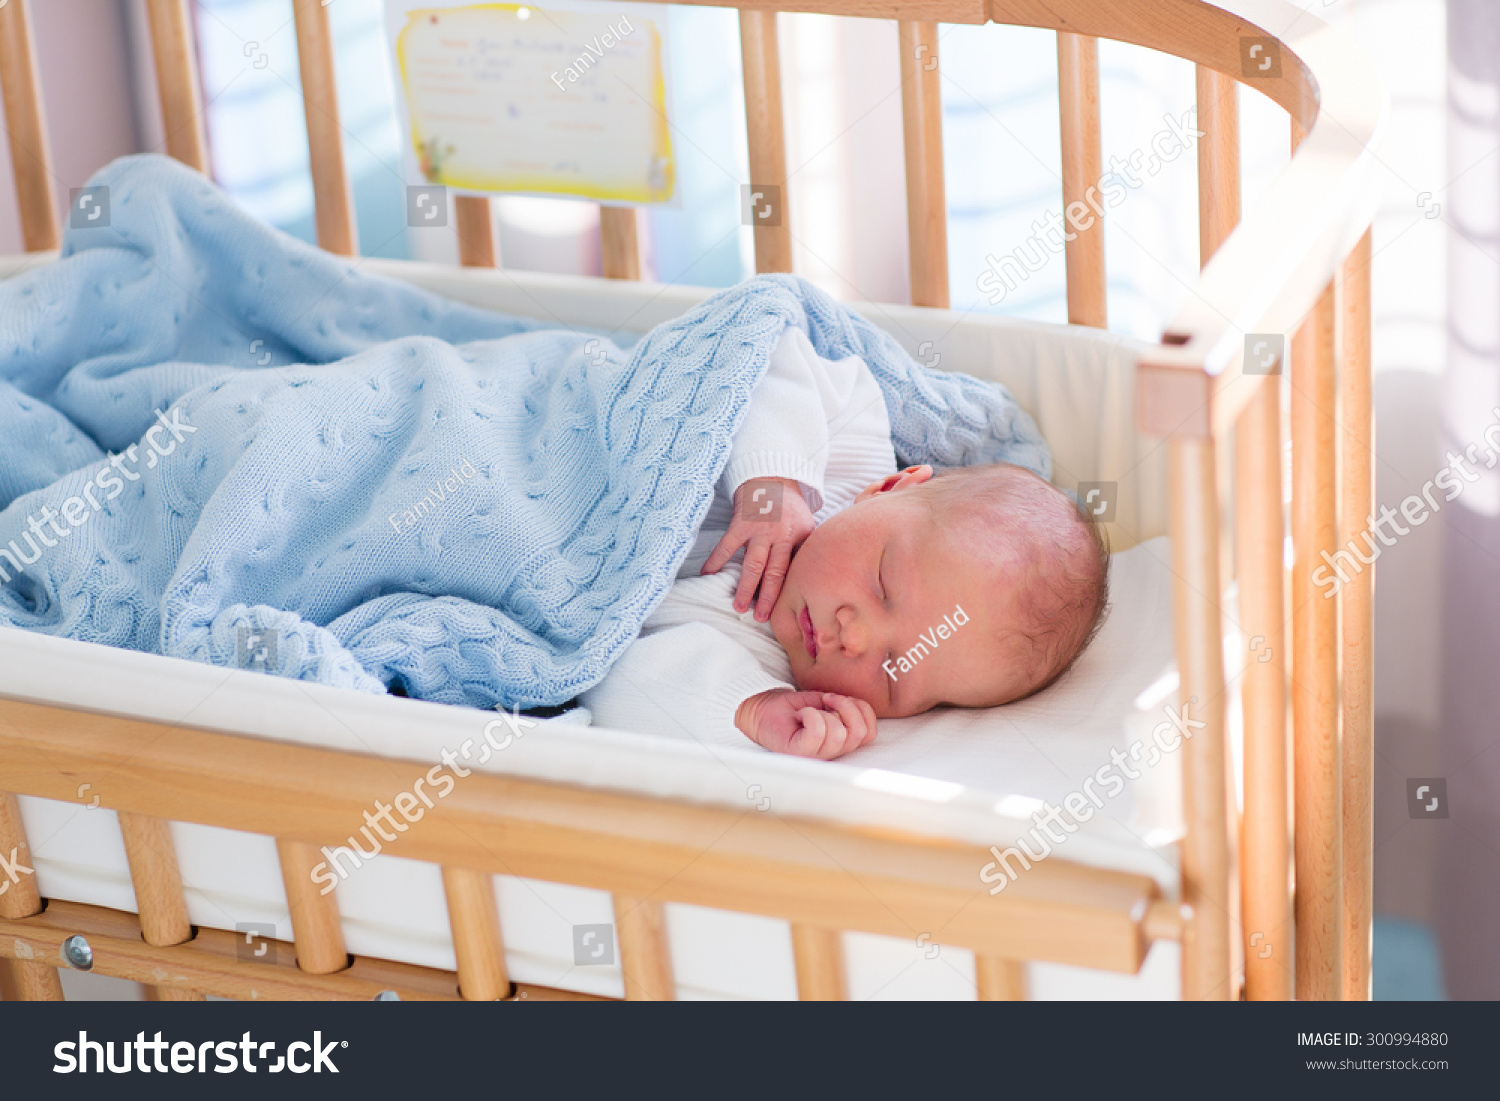 Newborn Baby Bedroom Newborn Baby Hospital Room New Born Stock Photo 300994880